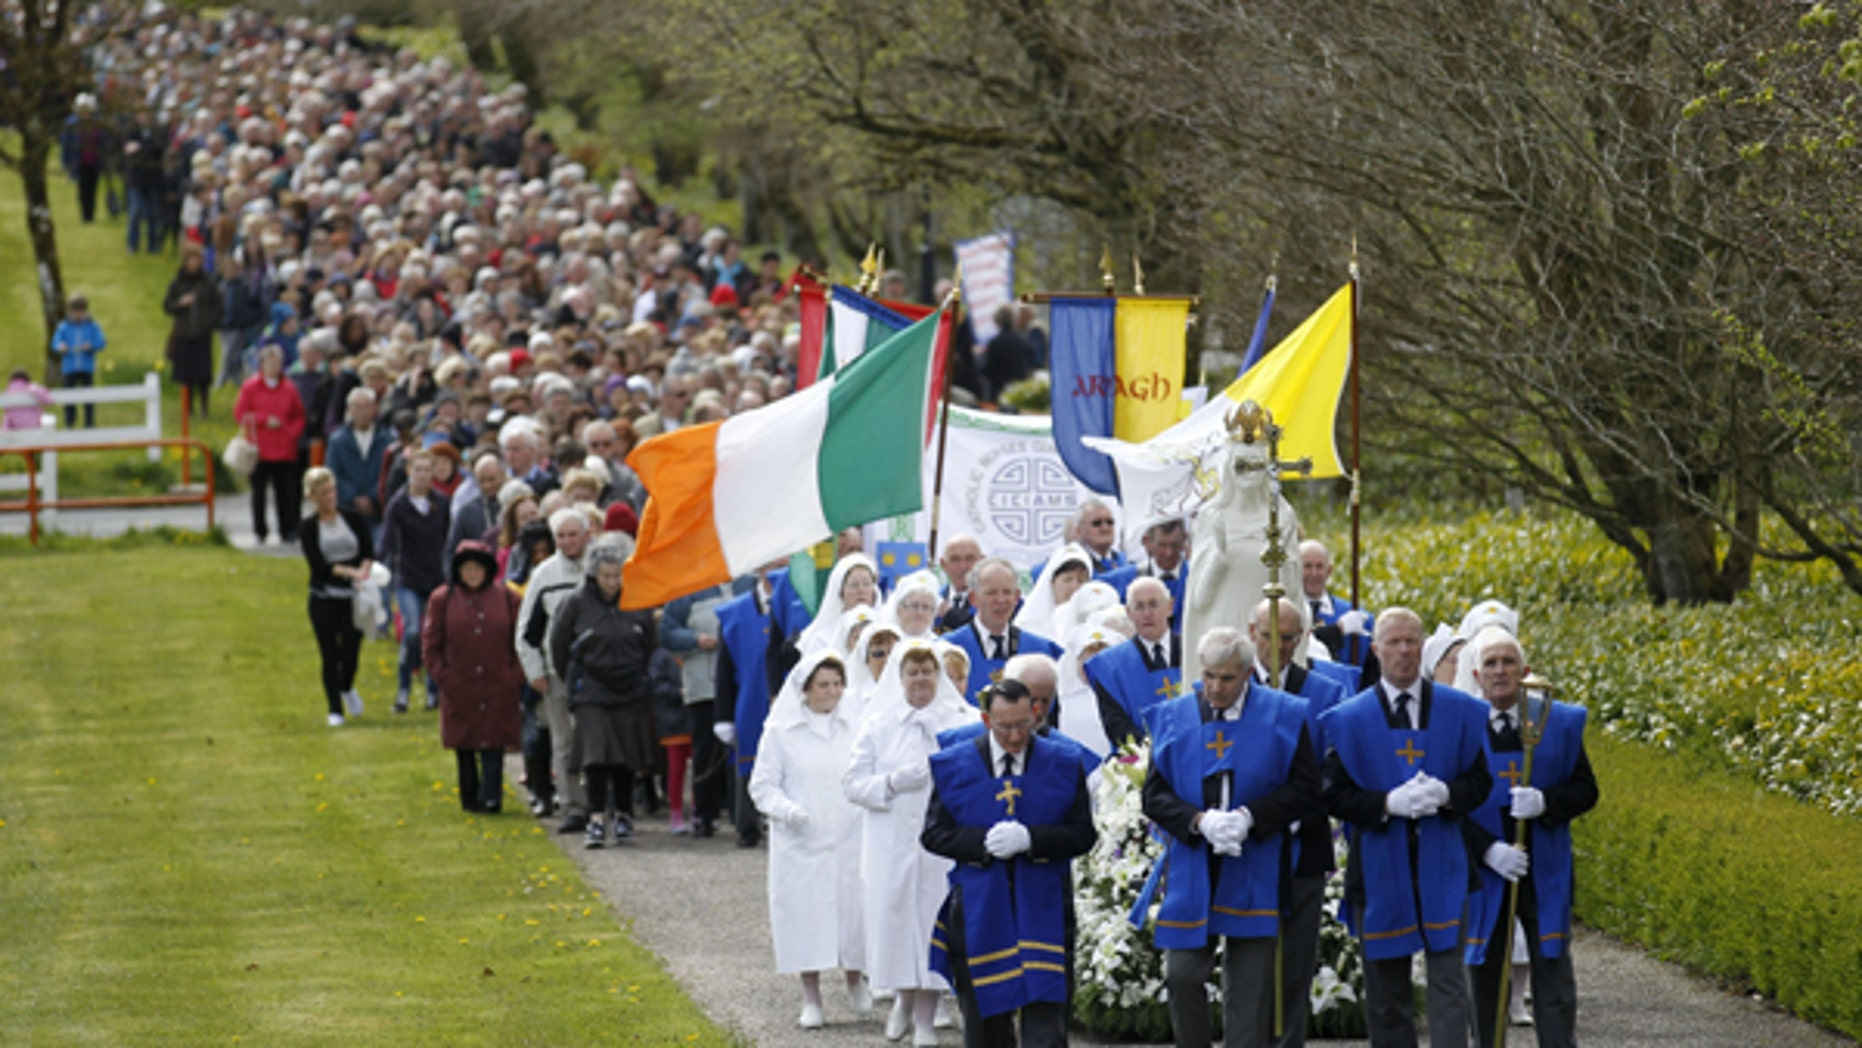 In this Saturday, May 4, 2013 file photo thousands of Roman Catholics take part in a Rosary Procession at Knock Shrine, Ireland. The group Chooselife held a National Prayer Vigil for the right to life of mothers and babies during a service at Knock Shrine.